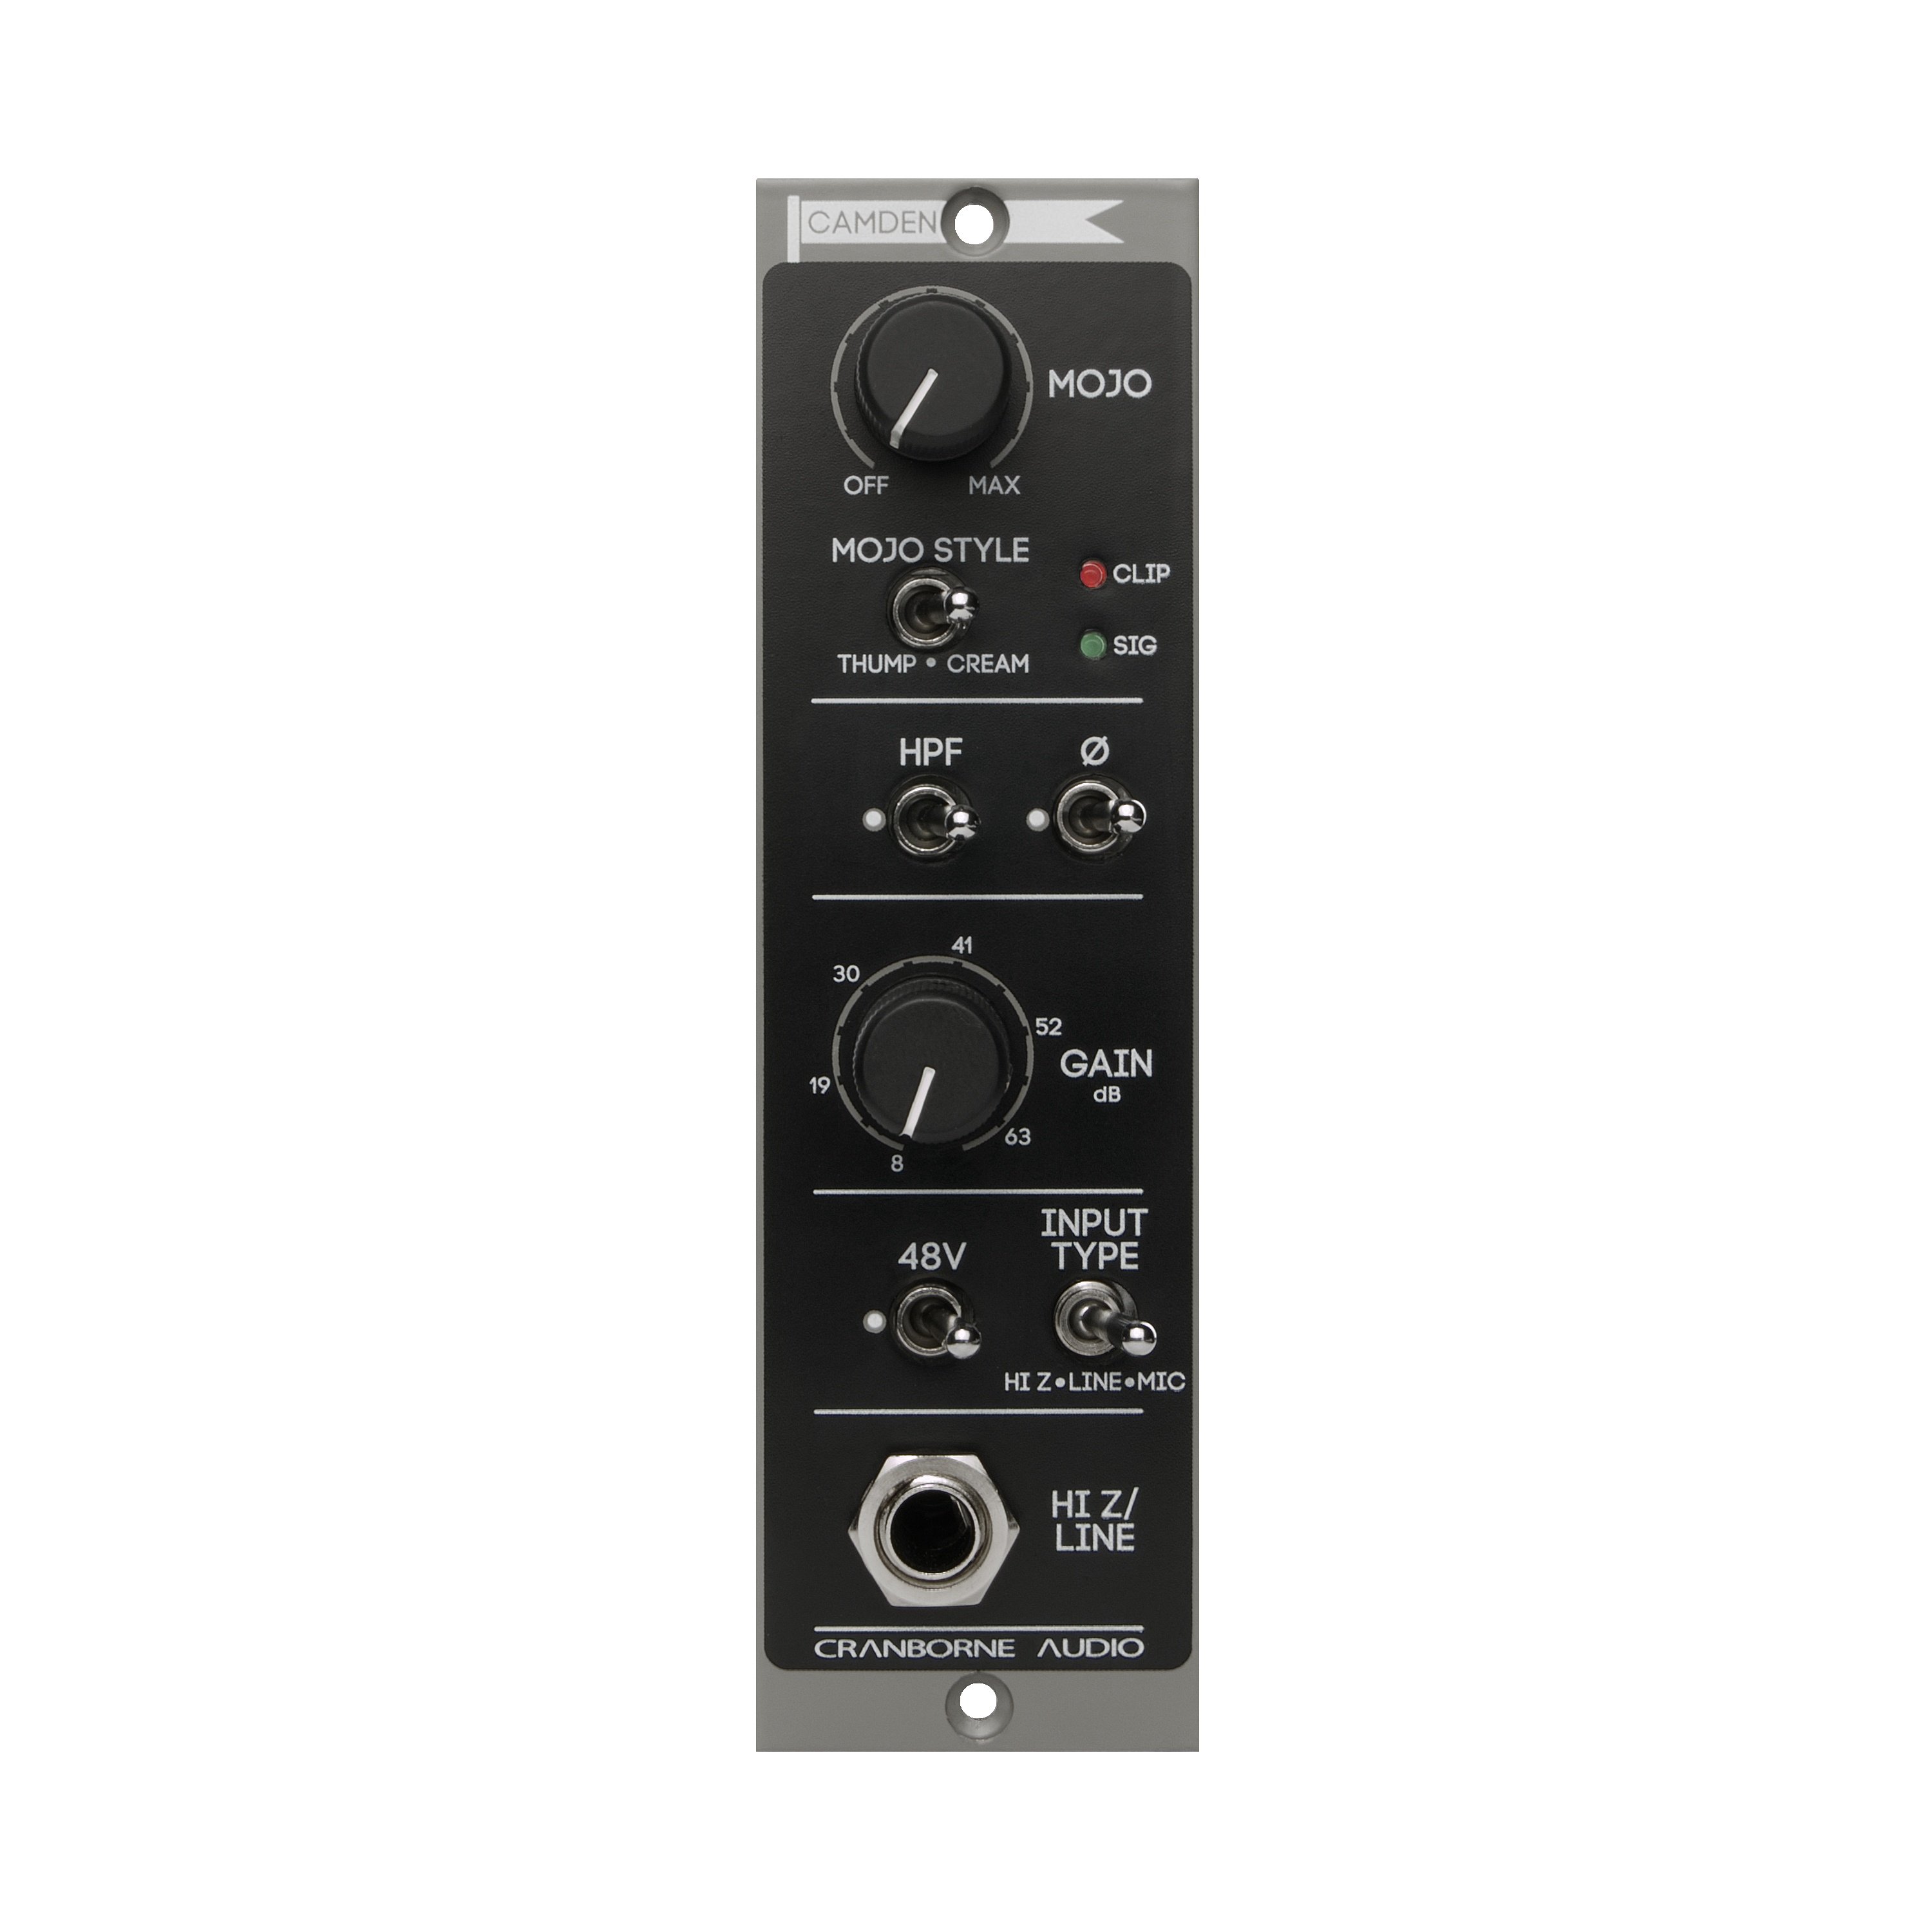 Cranborne Audio Camden 500 Series Preamp And Signal Processor We Have More Circuits Measurement That You May Like Most Astoundingly Clean Linear Transparent Youve Ever Heard But It Also Has Mojo 2 Discrete Custom Analogue Saturation Can